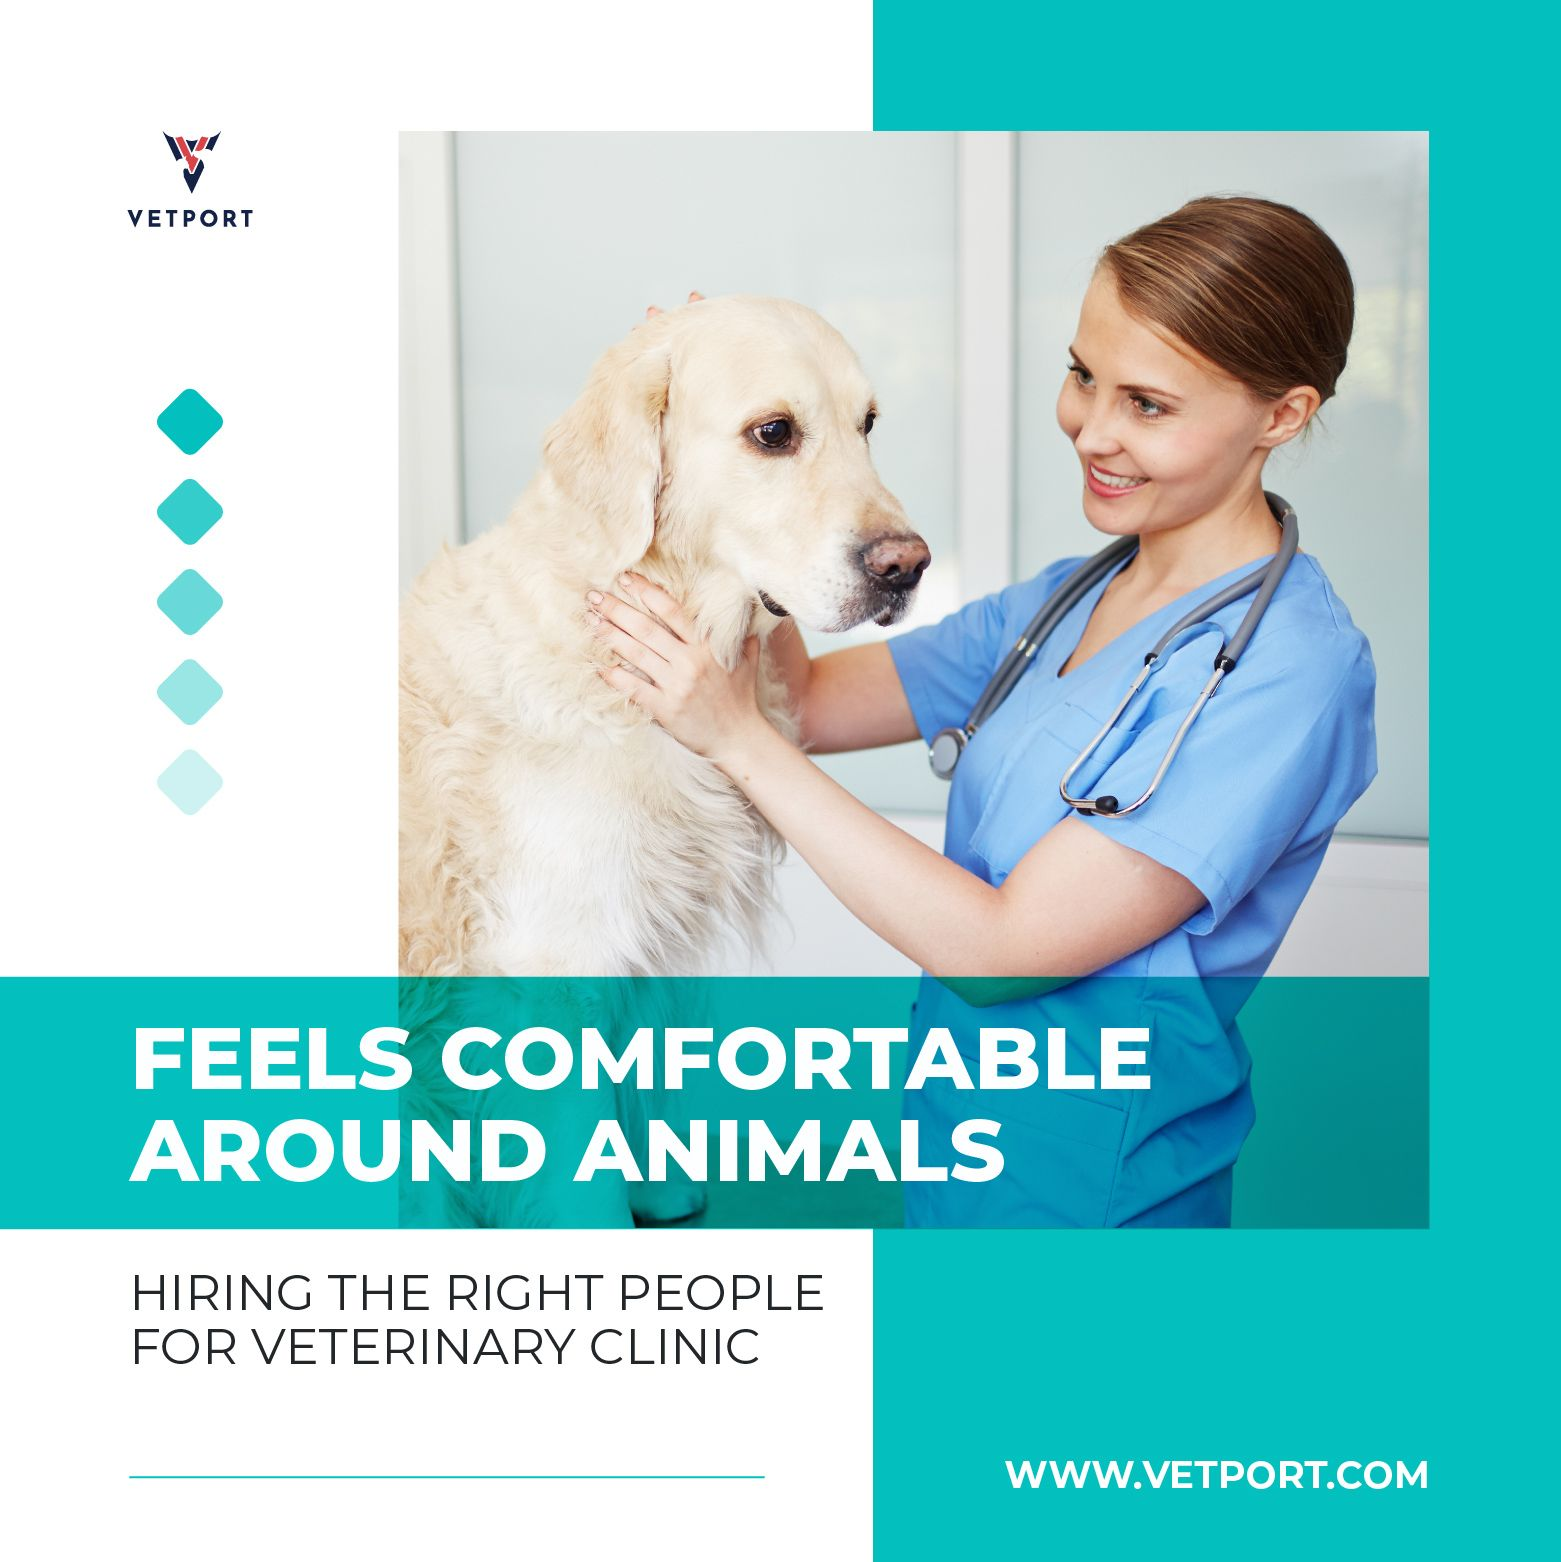 Hiring The Right People For Your Veterinary Clinic Saturdaymotivation Saturdaythoughts Veterinarian Pets Vetport Vet Veterinary Clinic Veterinary Clinic